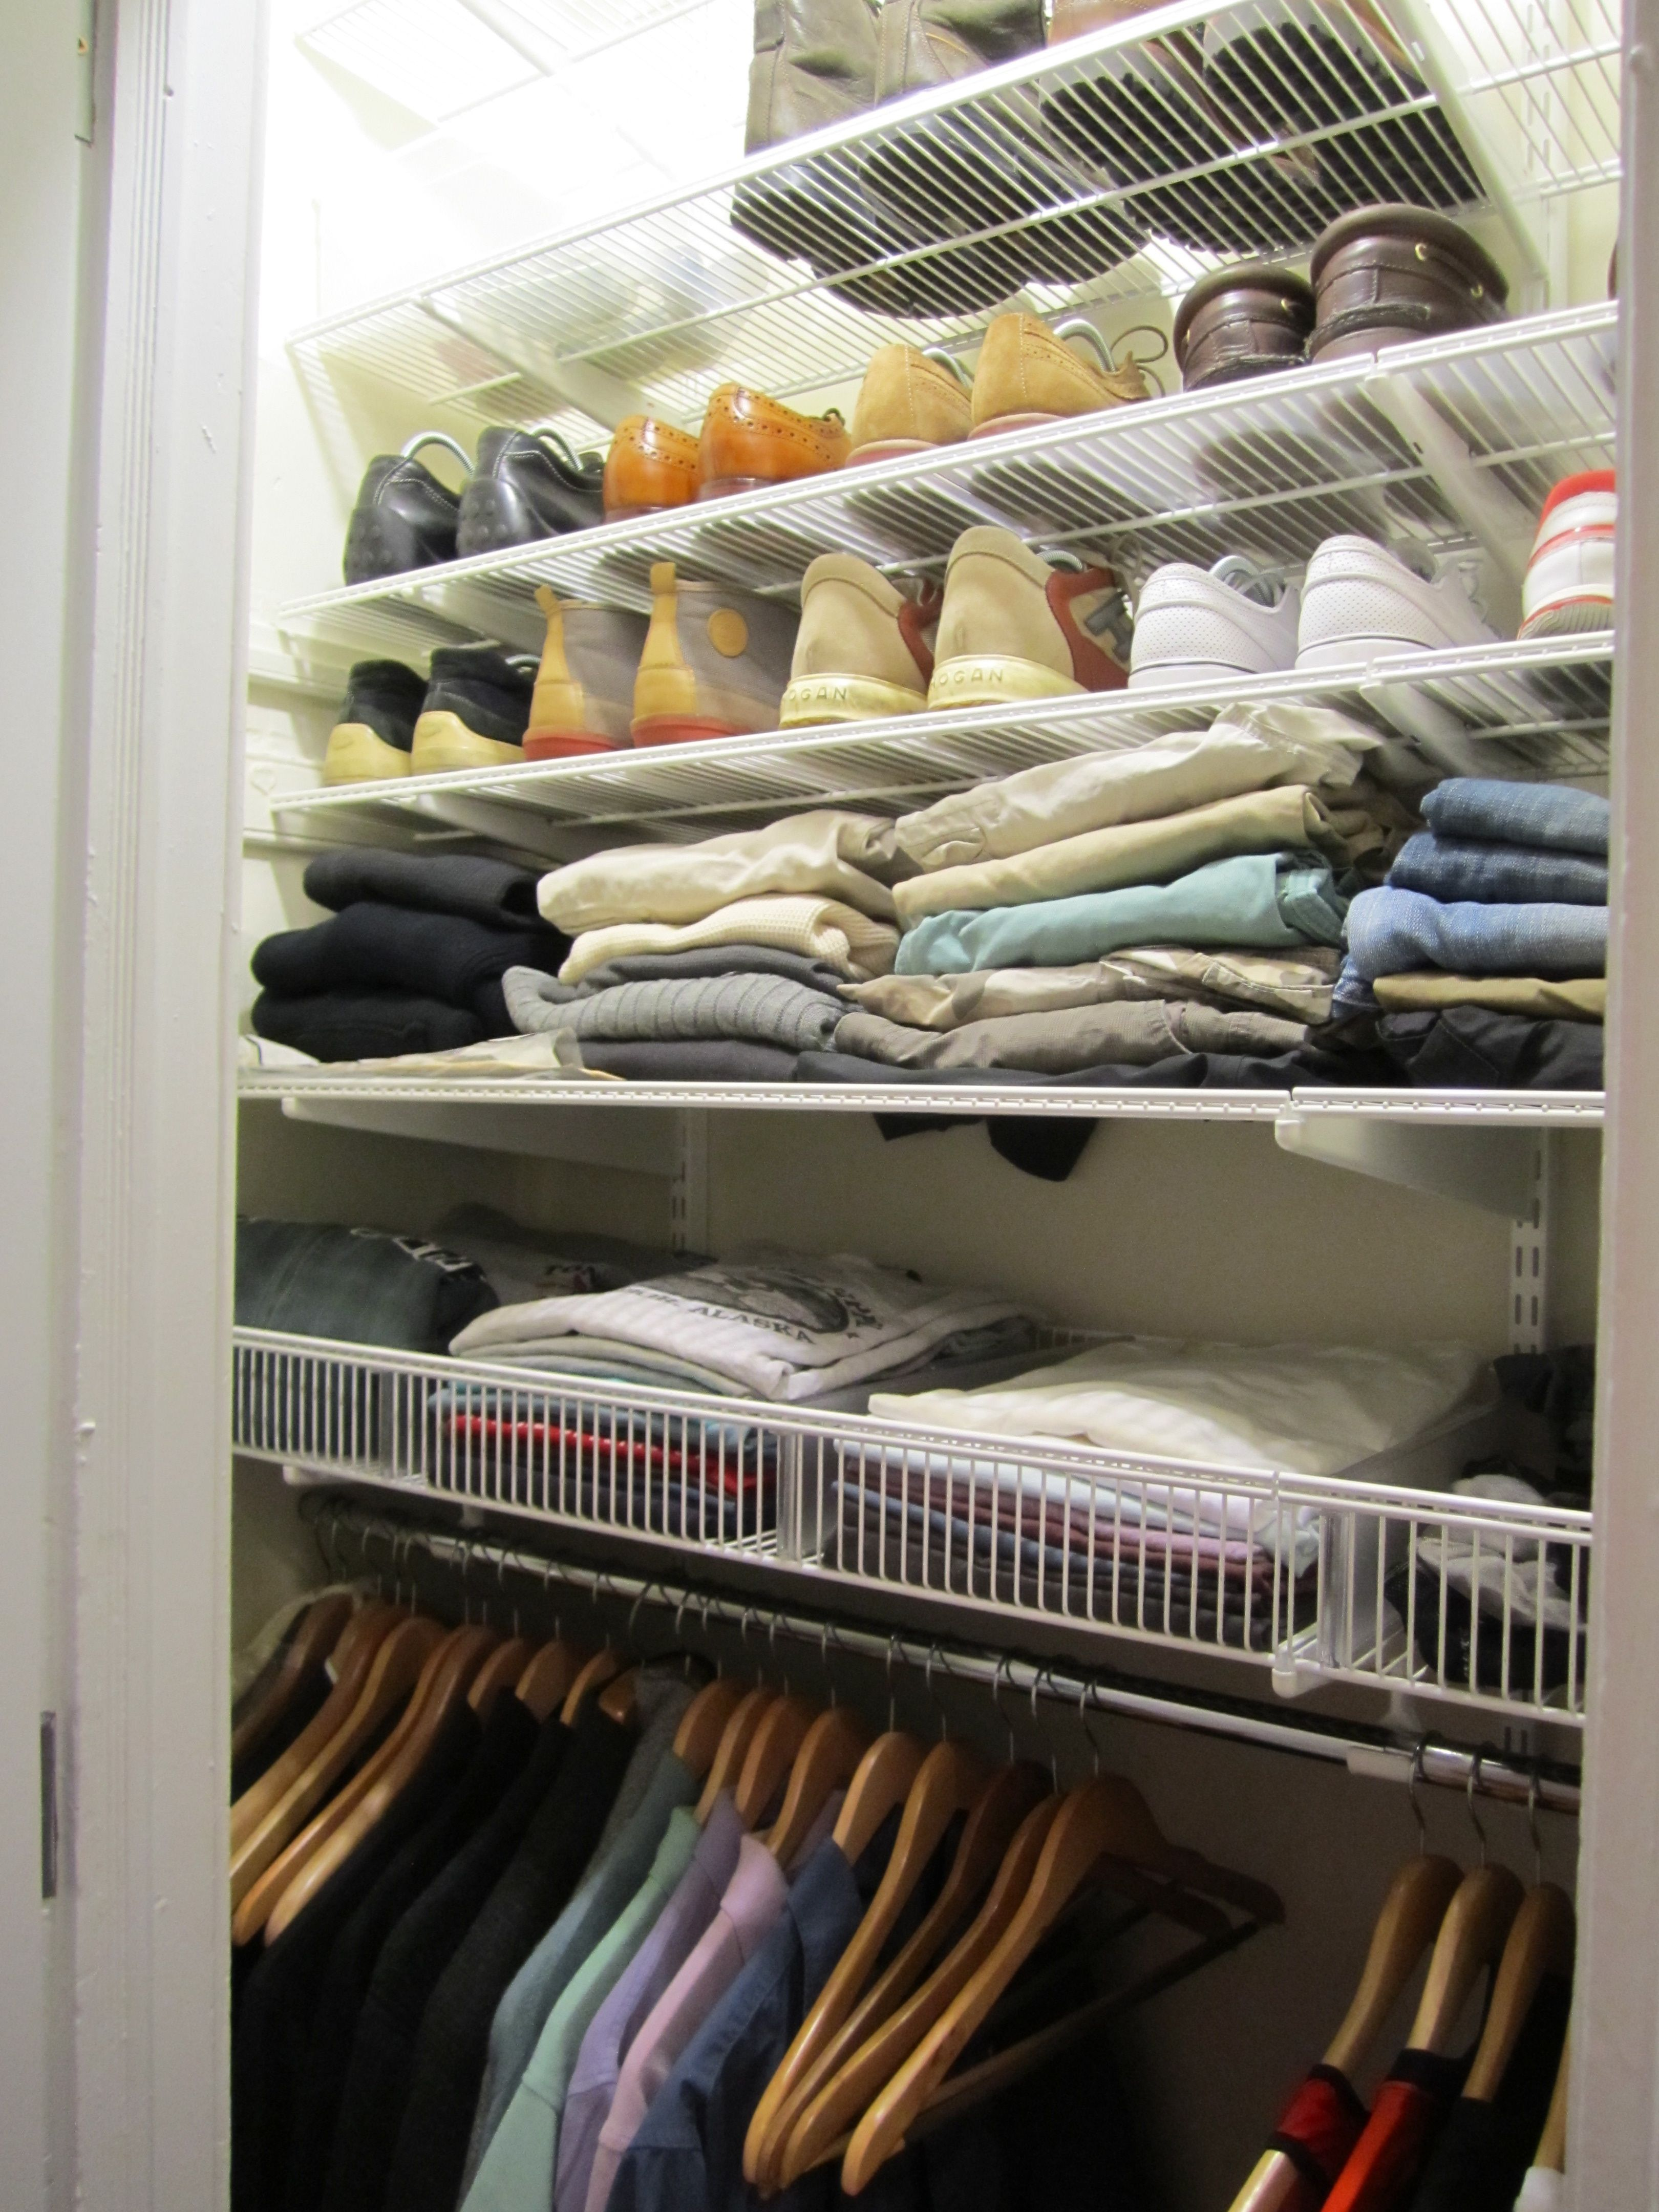 Beau Inspiring Interior Storage Design Ideas With Nice Elfa Closet Systems:  Container Store Closet Organization | Elfa Closet Systems | Elfa Reviews